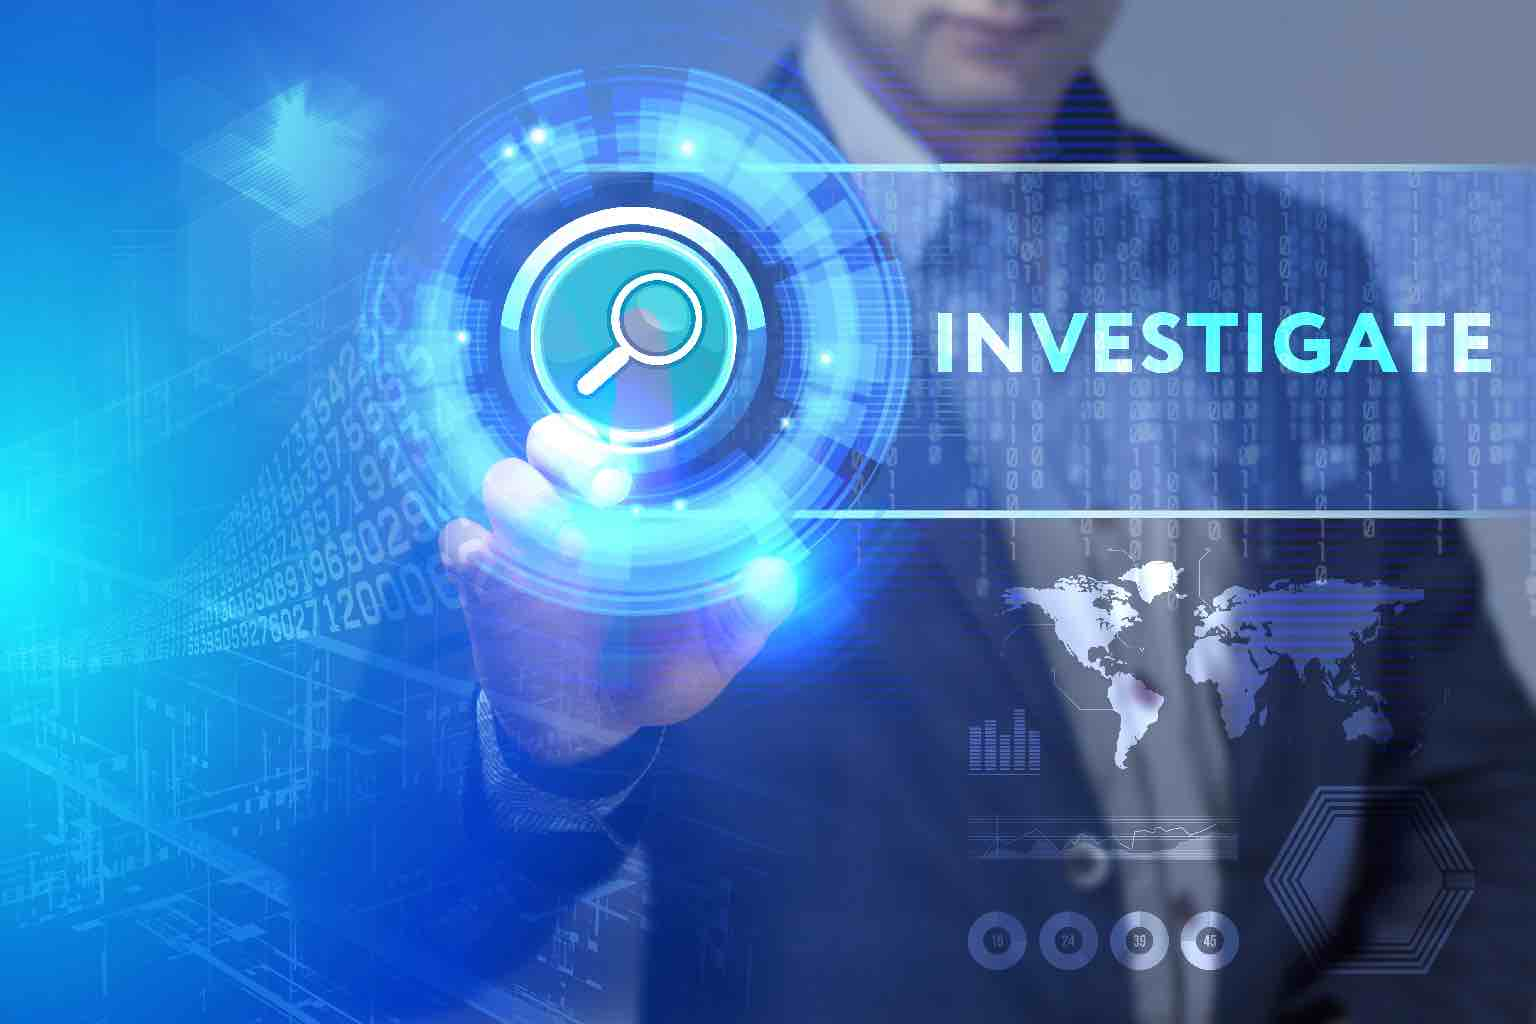 """Picture of a man tapping of a button tagged with the word """"INVESTIGATE"""" from the other side of a screen"""